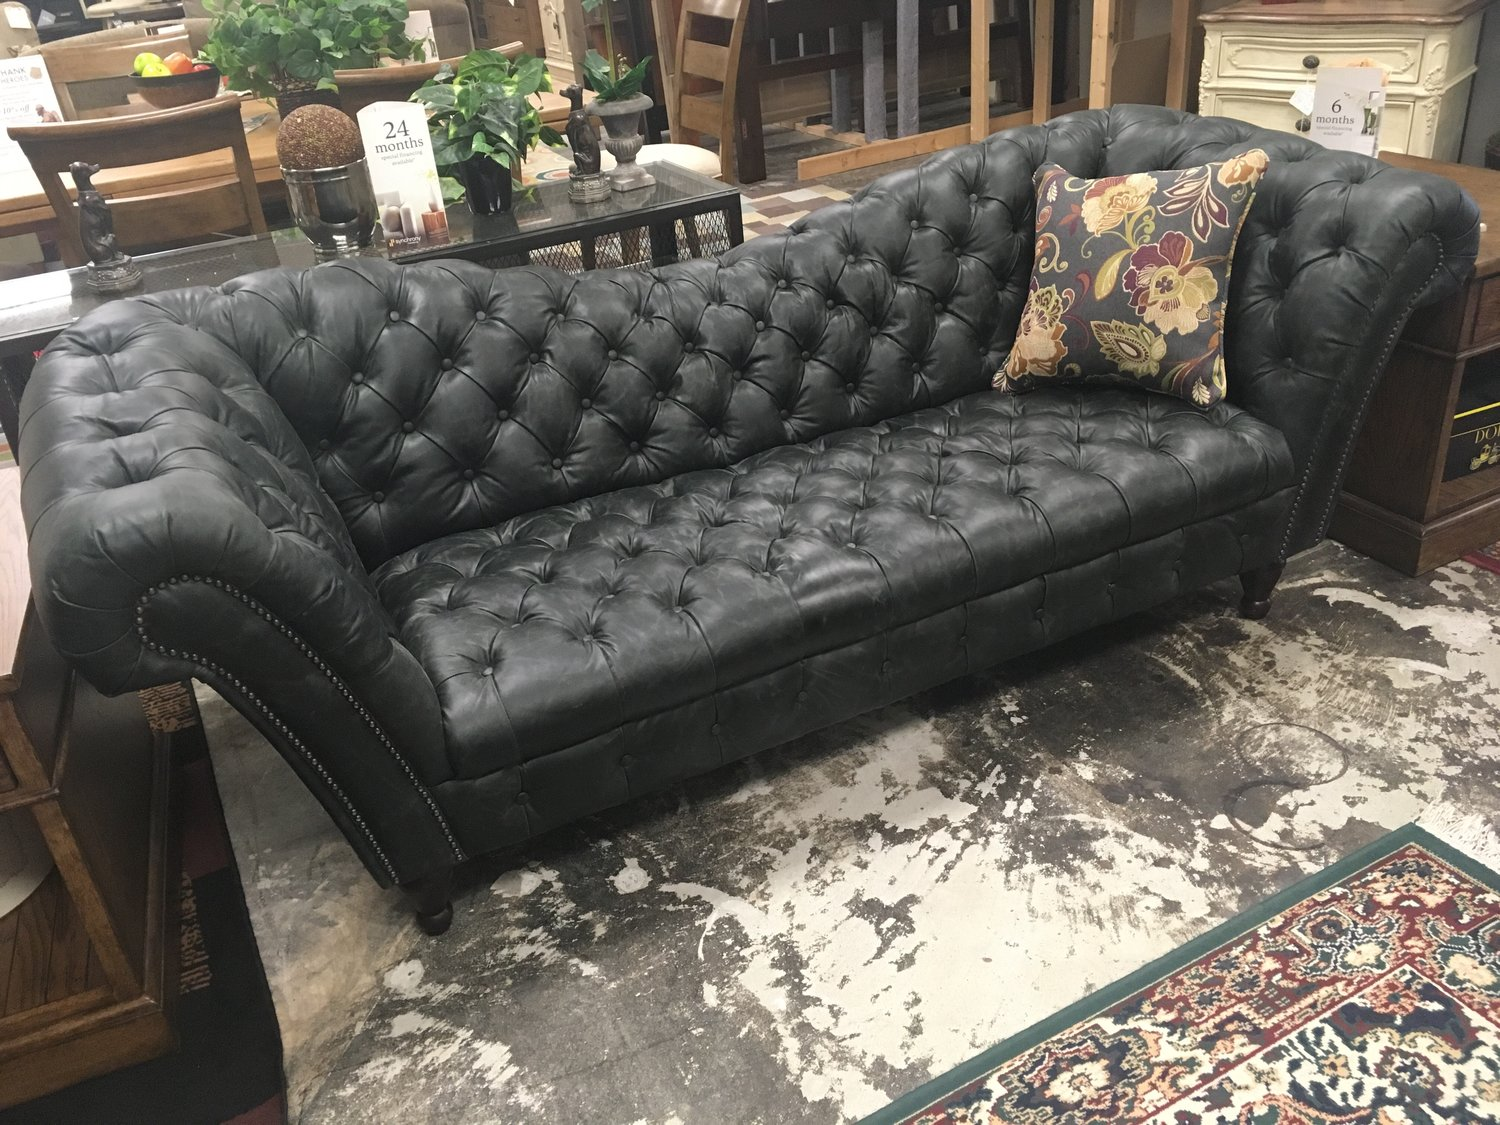 Four Hands Black Leather Tufted Fainting Sofa Sold Furnish This Fine Home Furnishings 3109 Hillsborough Road Durham Nc